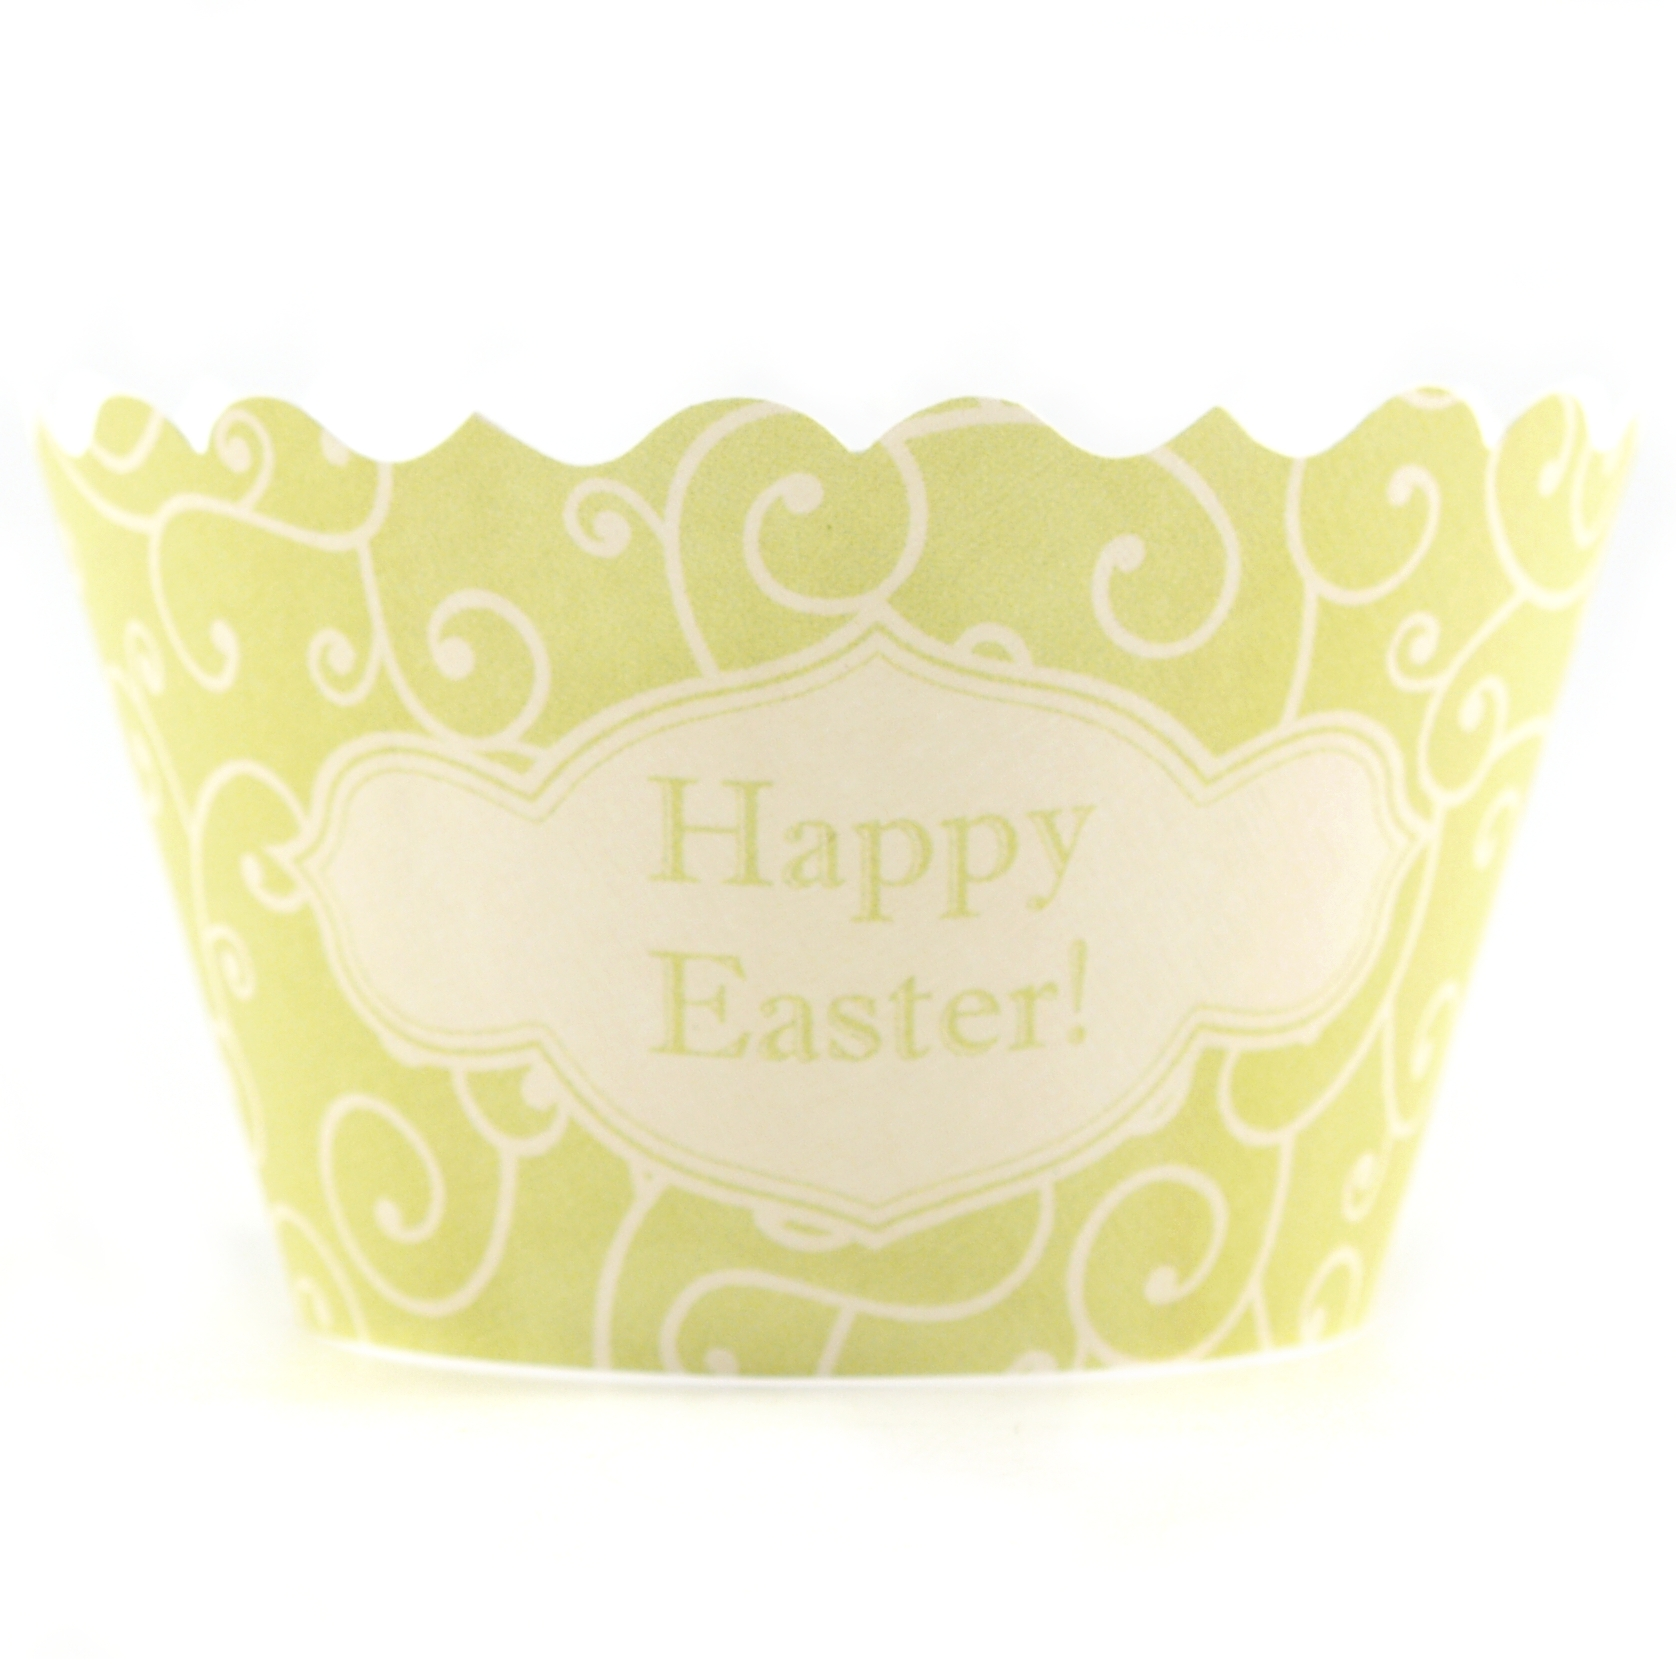 Bella Cupcake Couture Olivia Chartreuse and Yellow Happy Easter Cupcake Wrapper, Set of 12